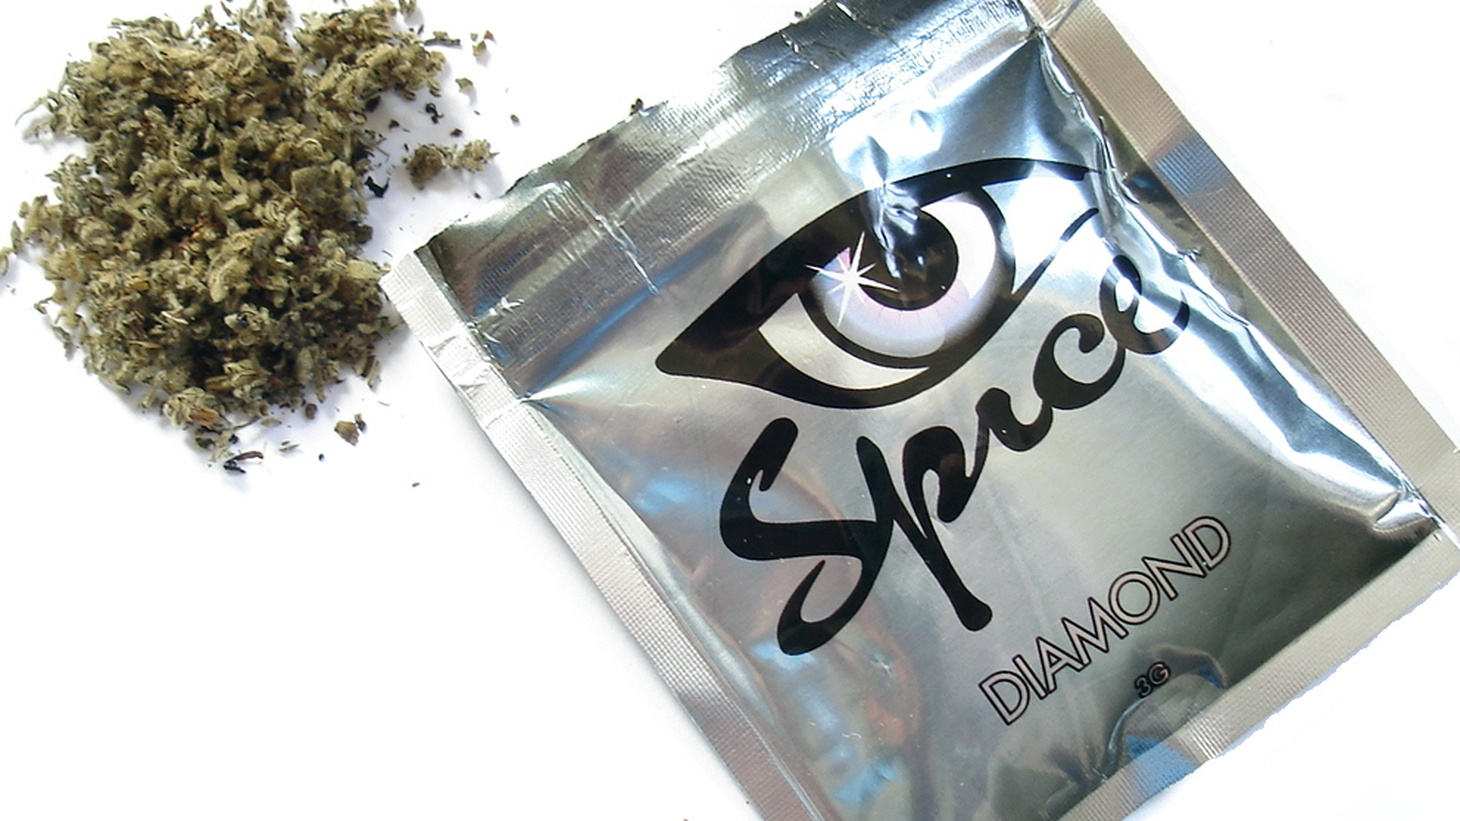 They're called Legal Highs, drugs that mimic illegal substances like marijuana and cocaine, but are just chemically different enough to pass through customs on their way from labs in China and India. Now they're causing a rash of overdoses in cities across the country.Are legalization and regulation the answer?